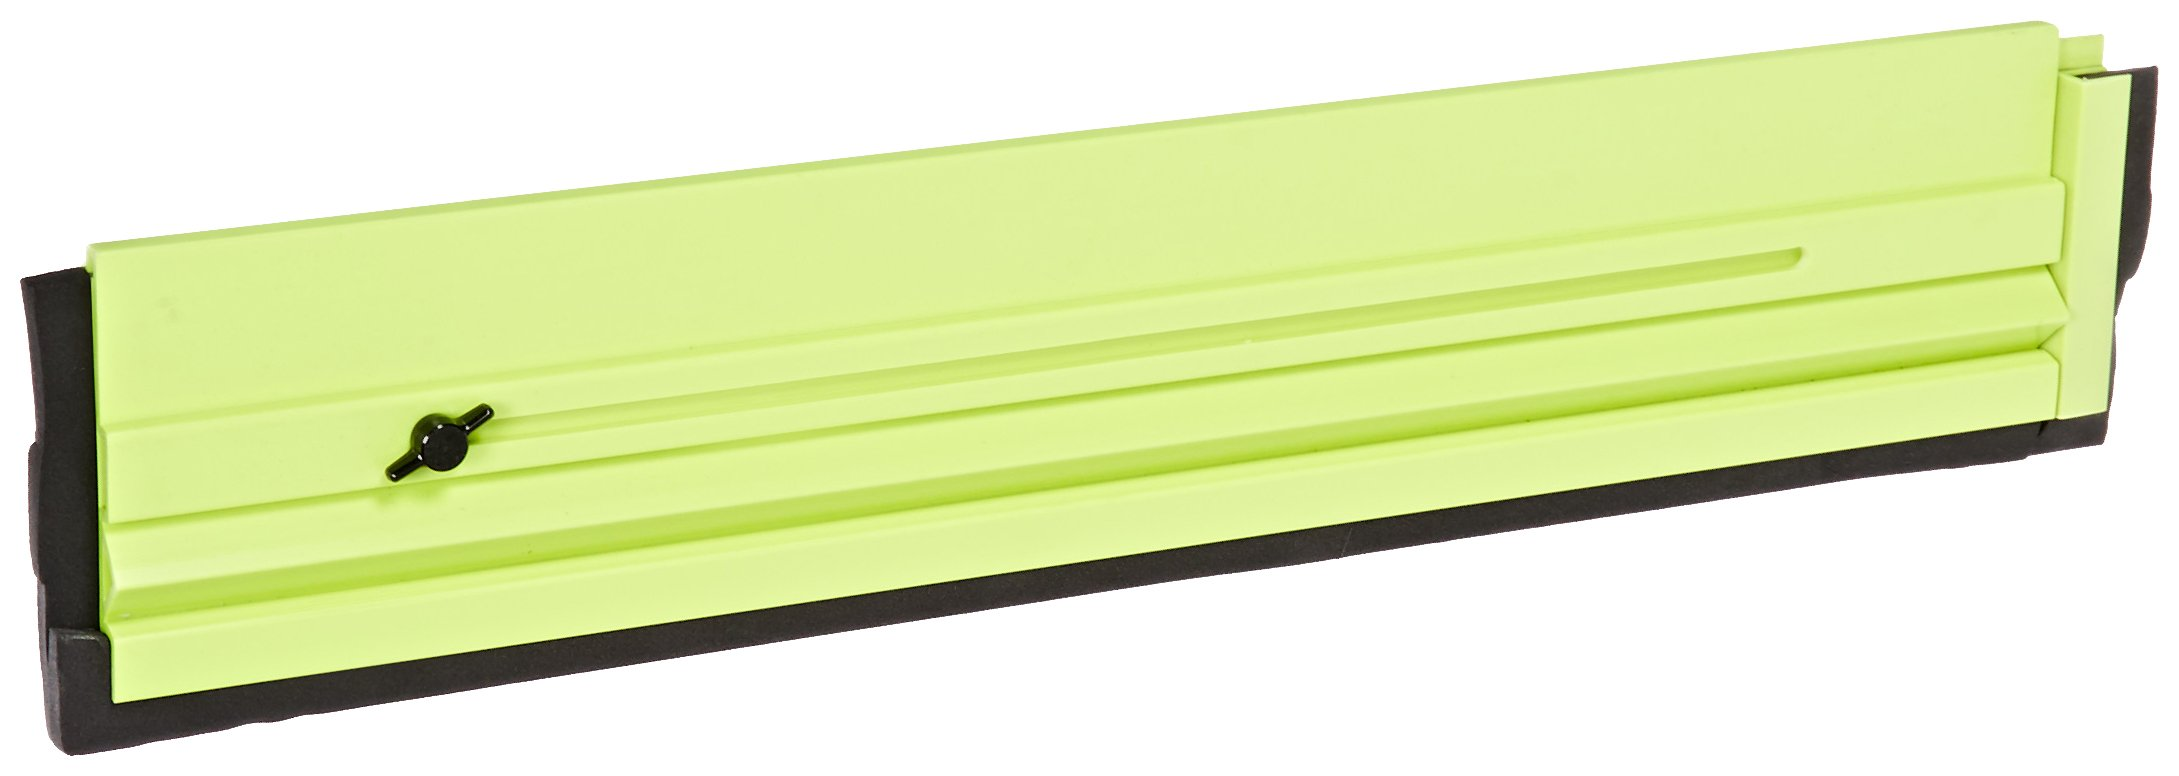 Impact 7240 Plastic/Rubber Seal Floor Dam, 24'' Extends to 40'' Length, Fluorescent Yellow/Green